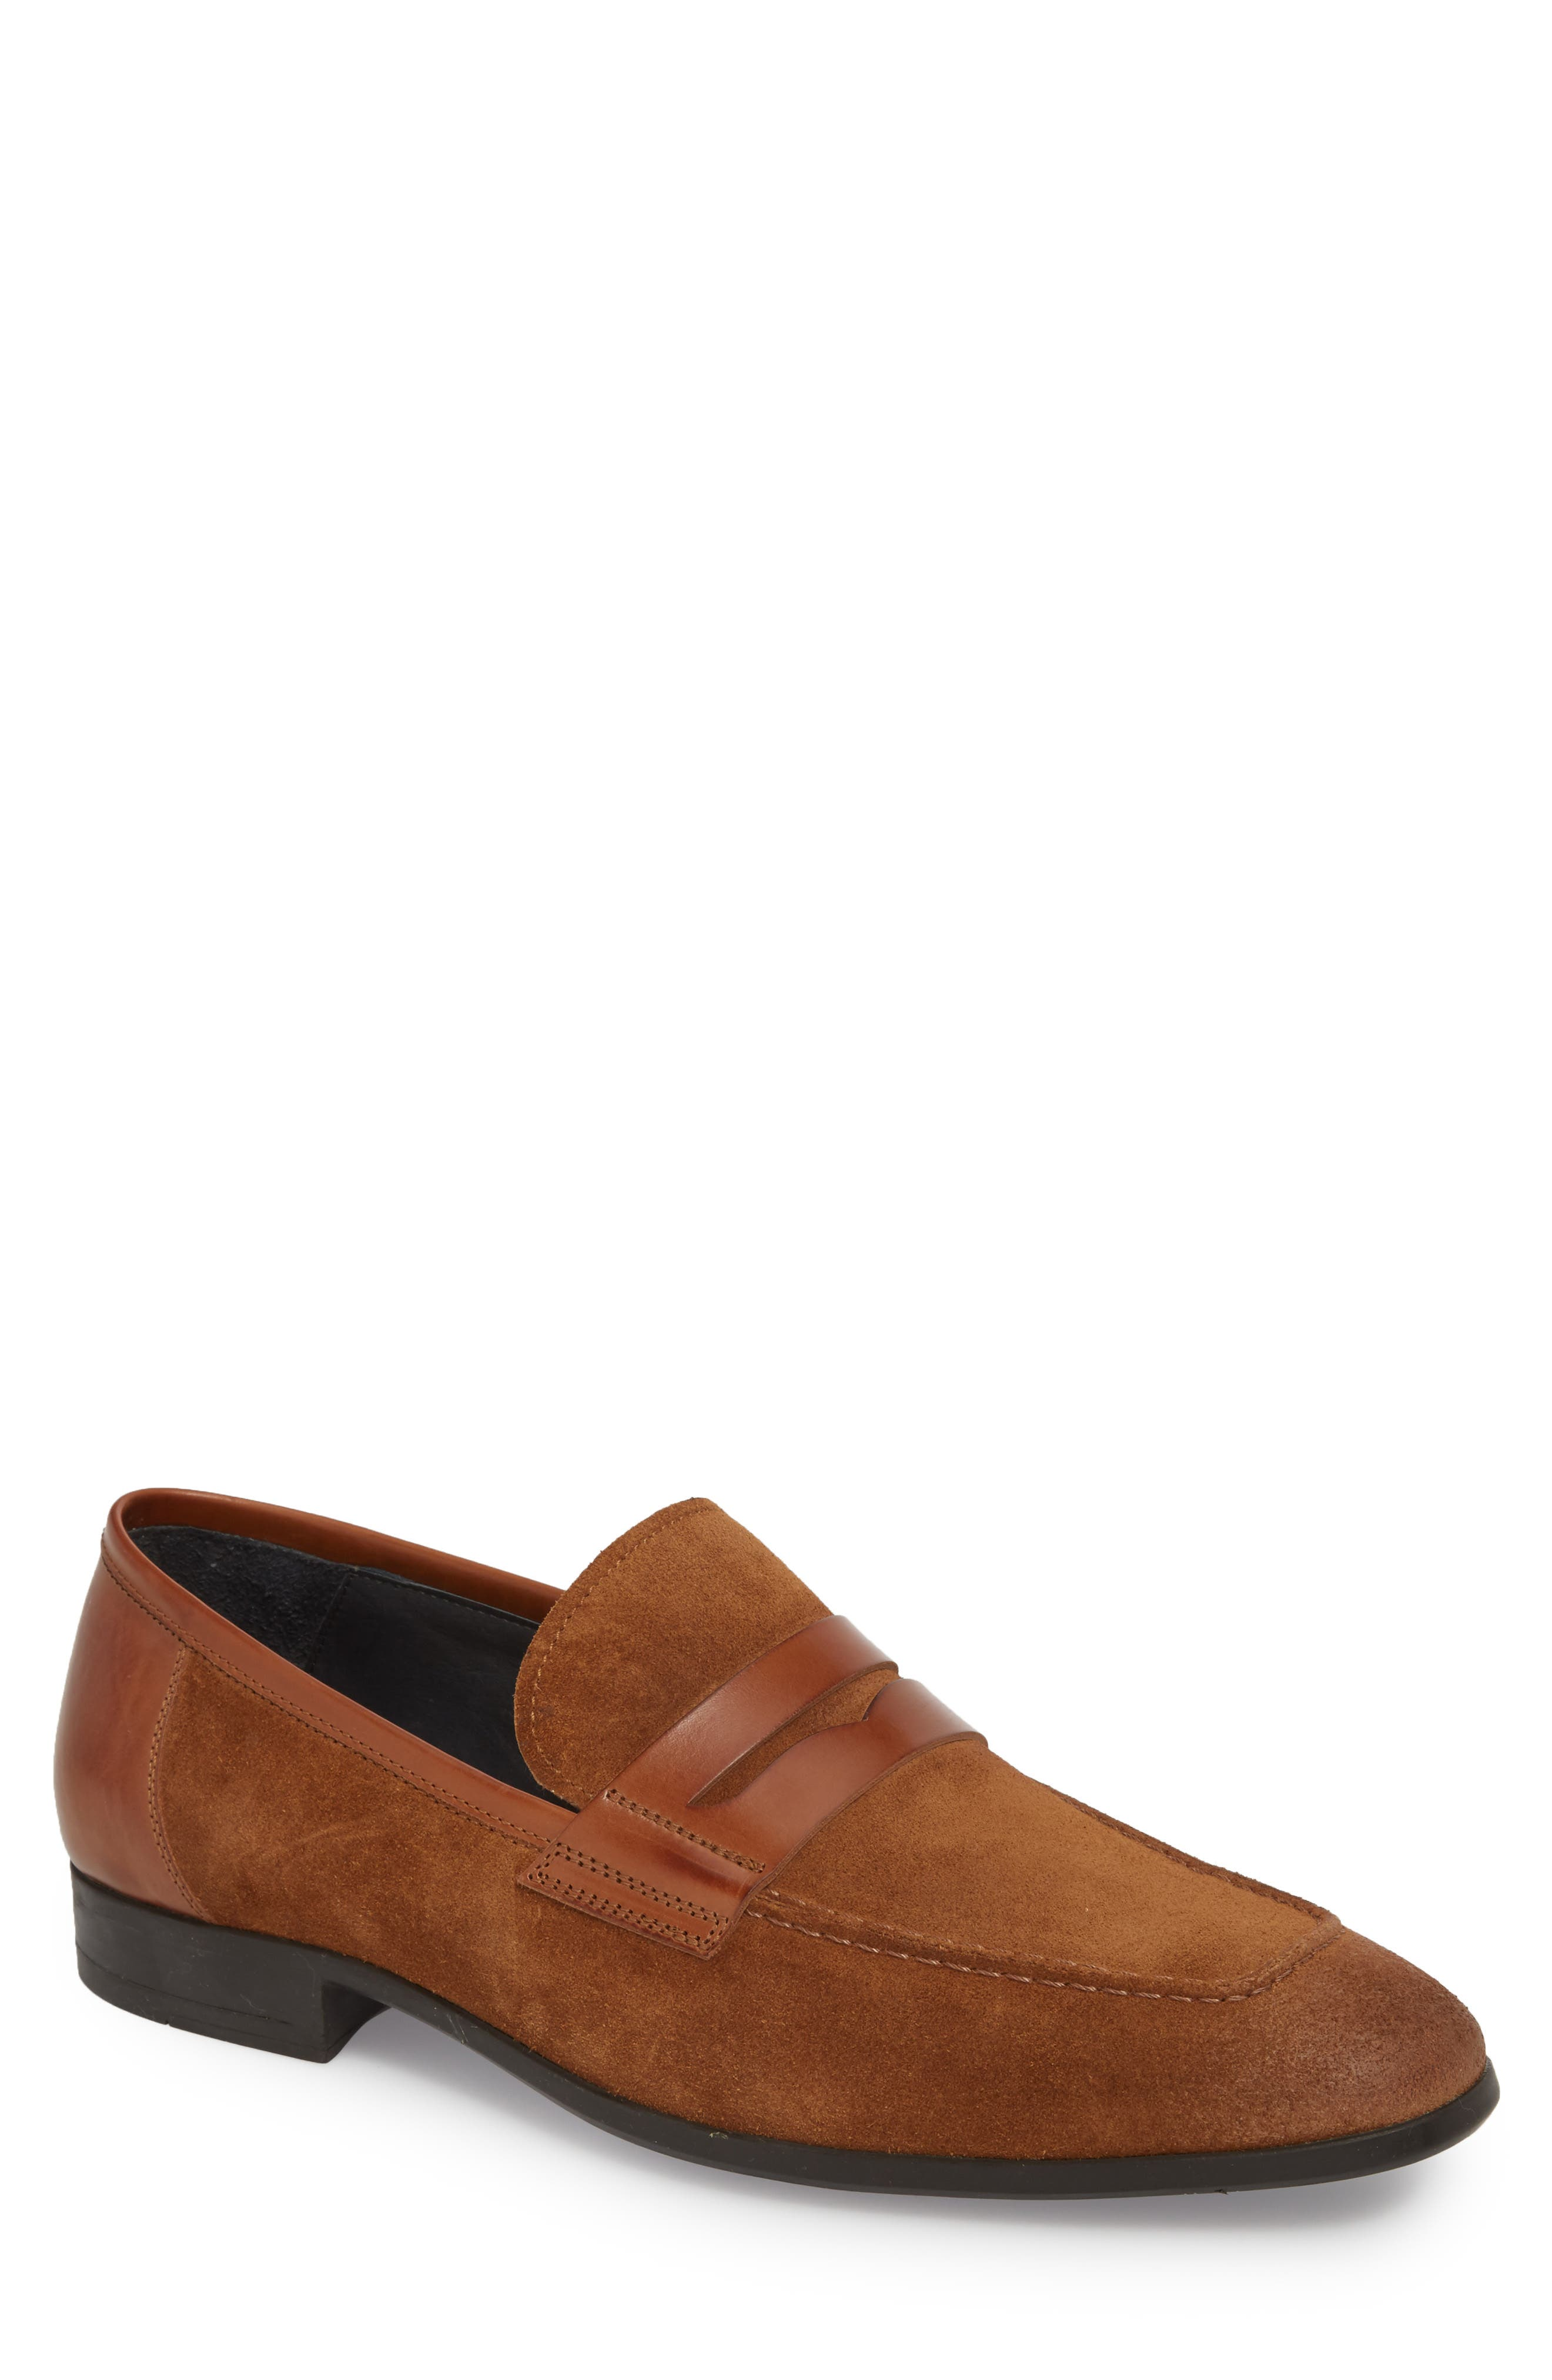 Powell Penny Loafer,                             Main thumbnail 1, color,                             Cognac/ Tan Suede